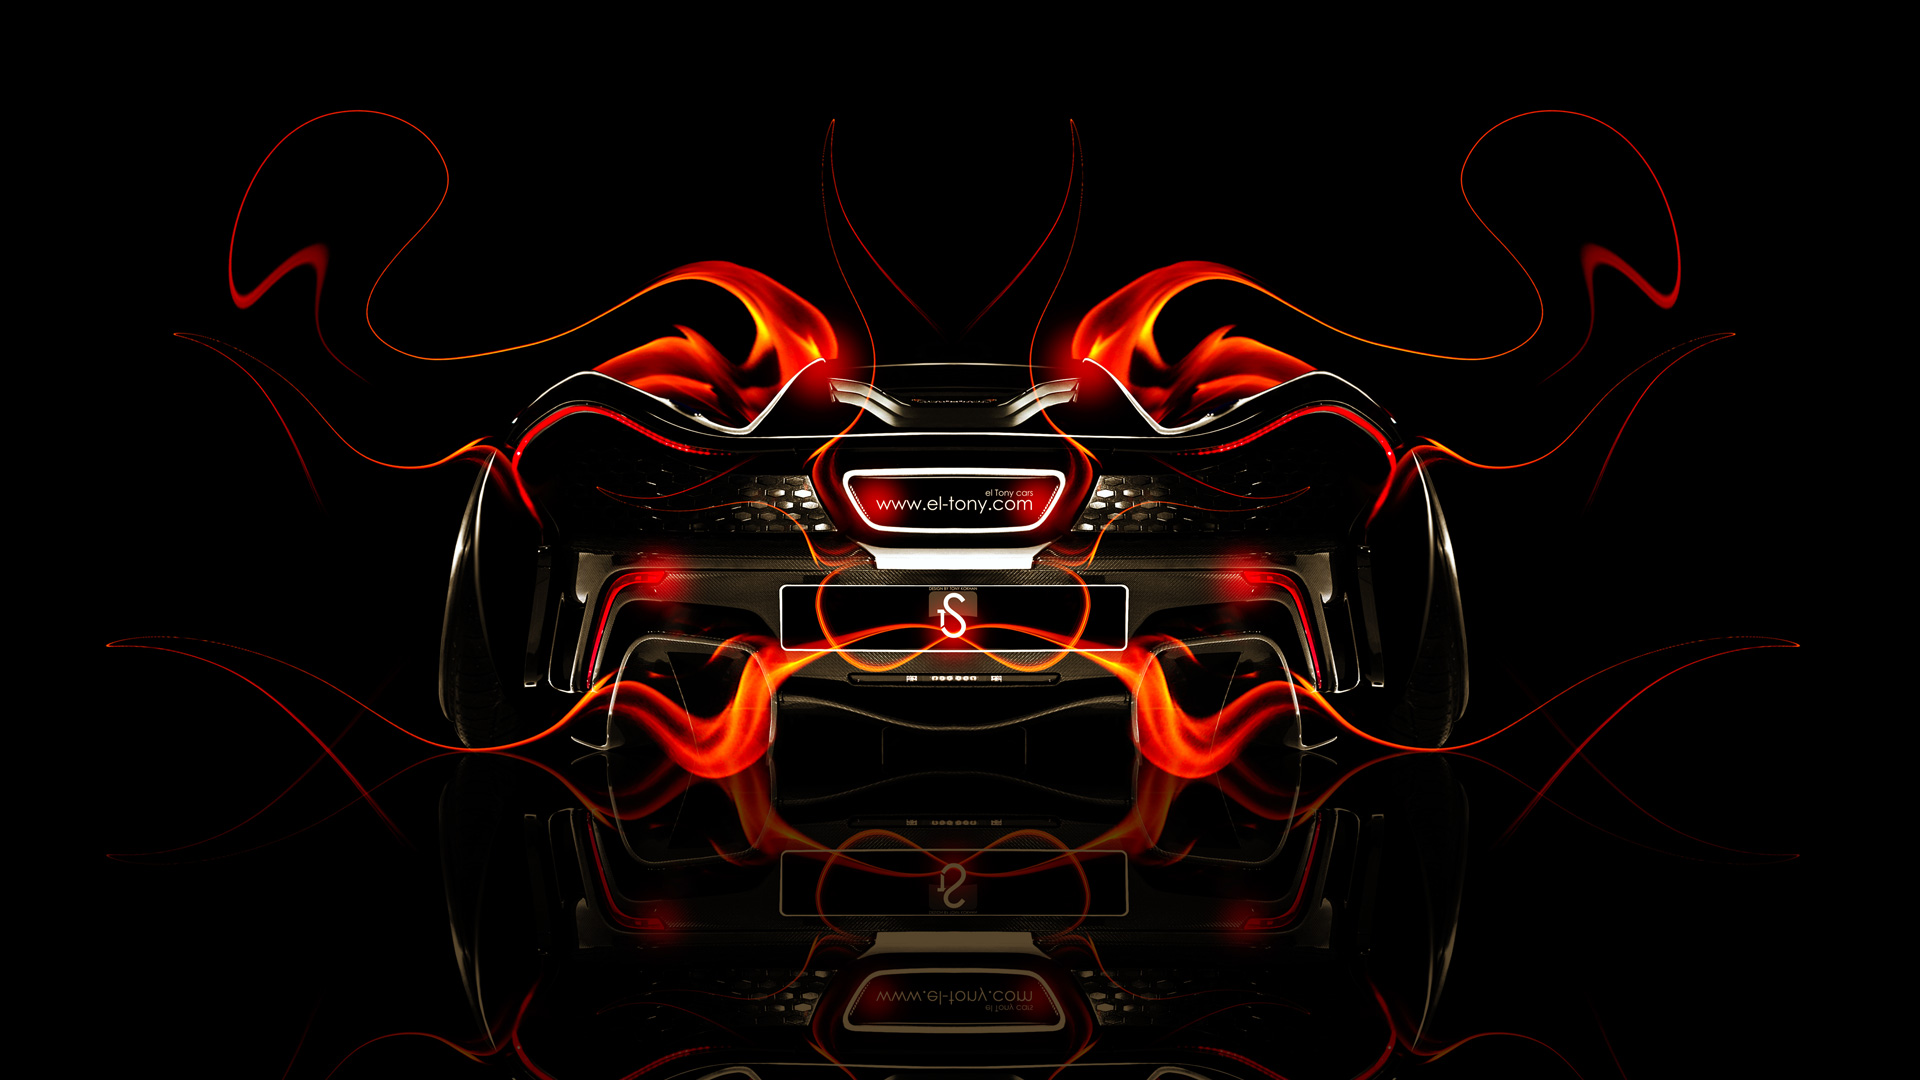 Exceptionnel McLaren P1 Back Fire Abstract Car 2014 HD